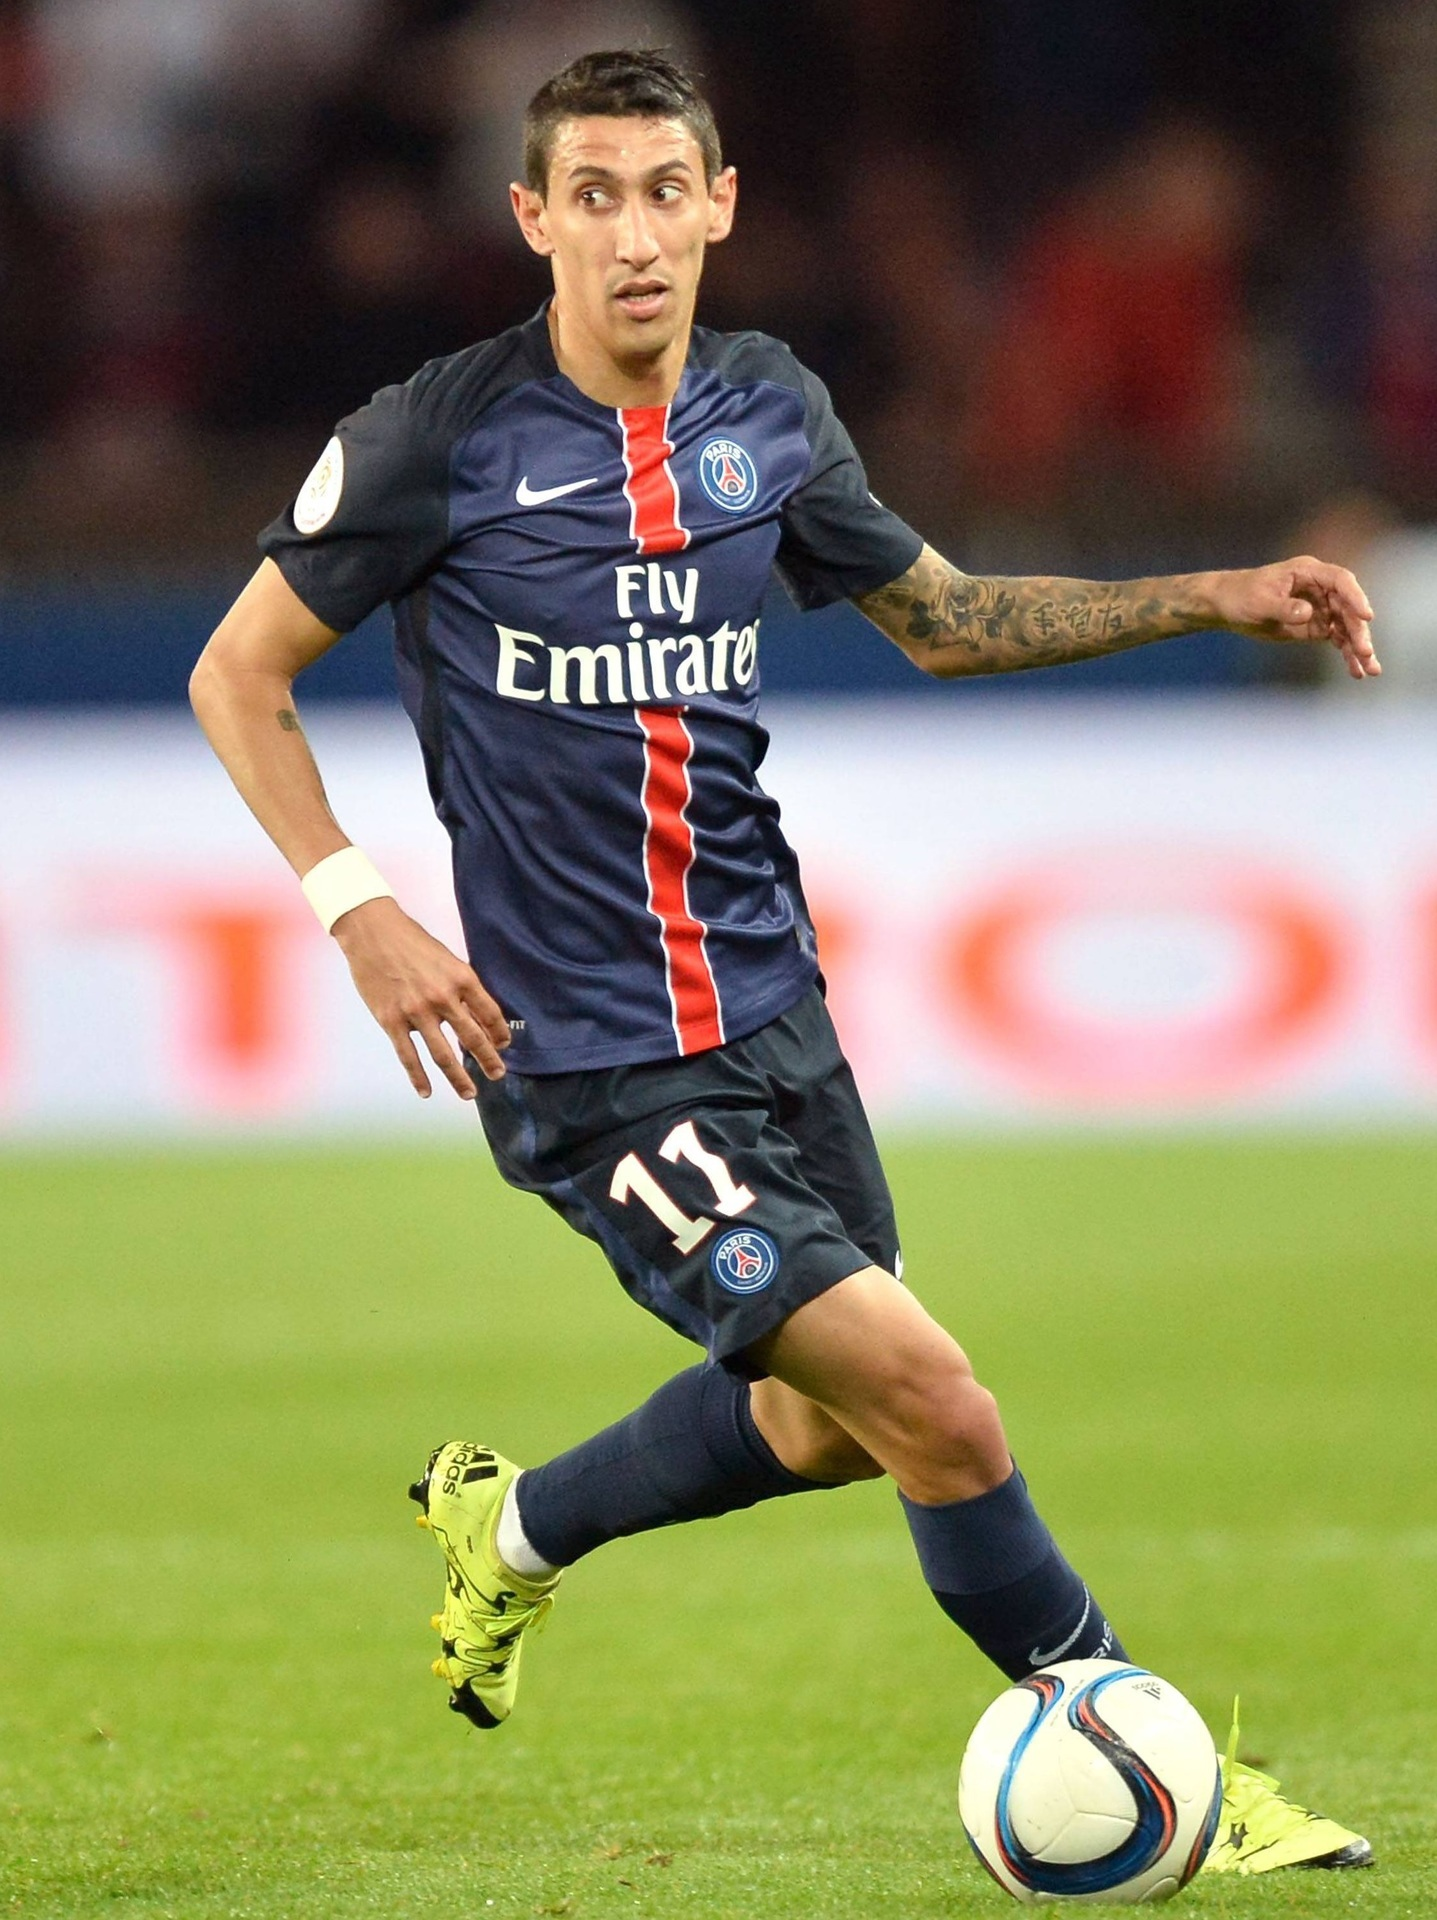 Paris-Saint-Germain-2015-16-NIKE-home-kit-Angel-Di-Maria.jpg